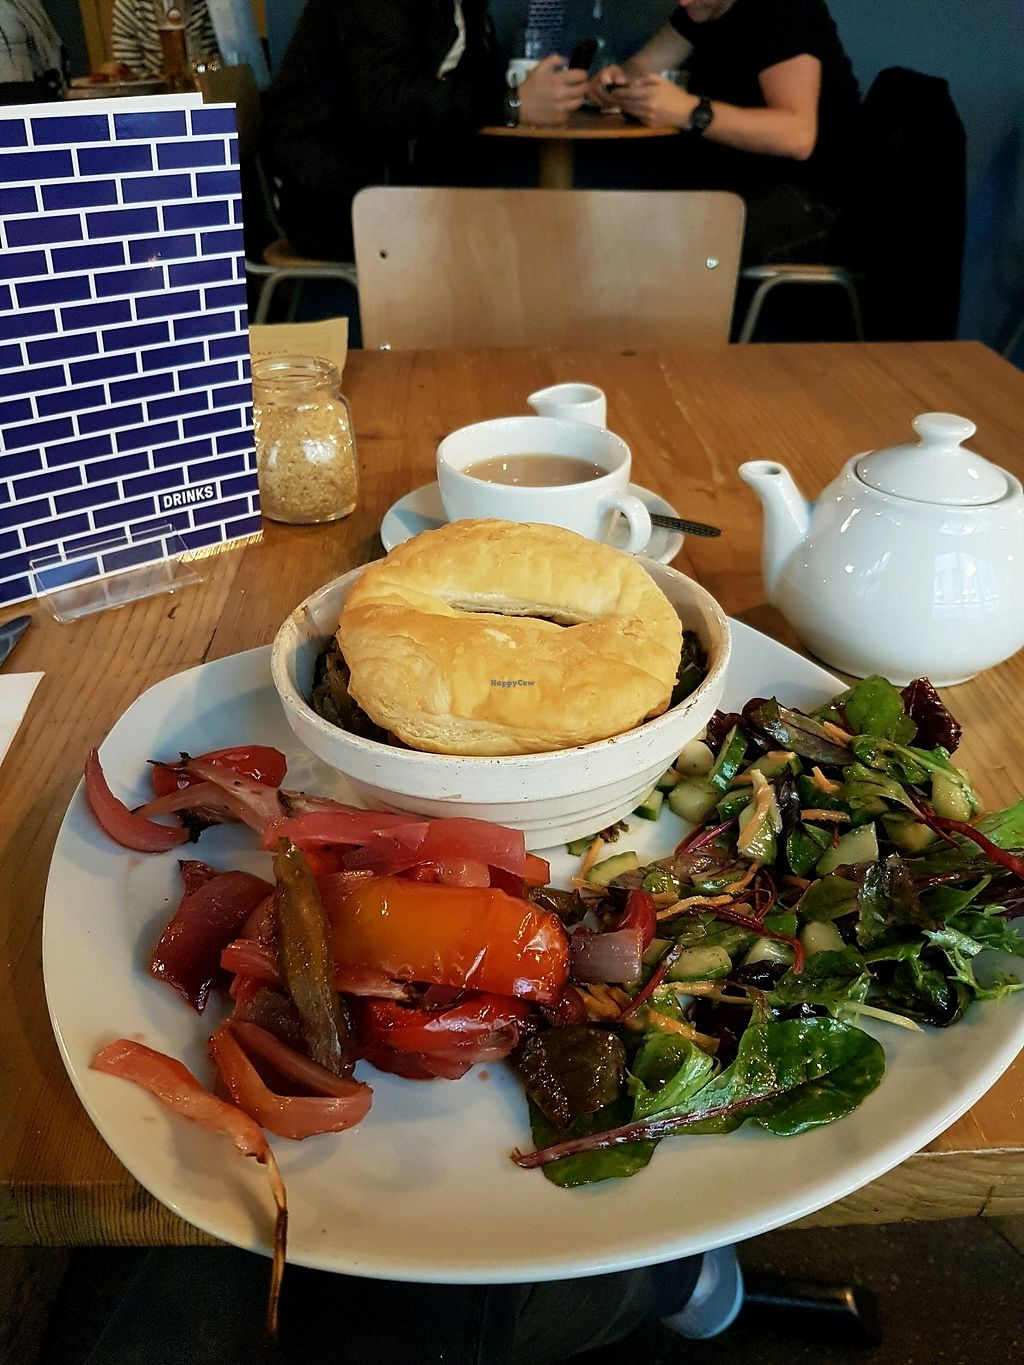 """Photo of Stereo  by <a href=""""/members/profile/MiriamAgat"""">MiriamAgat</a> <br/>'pie' with roasted vegetables <br/> April 12, 2018  - <a href='/contact/abuse/image/15285/384581'>Report</a>"""